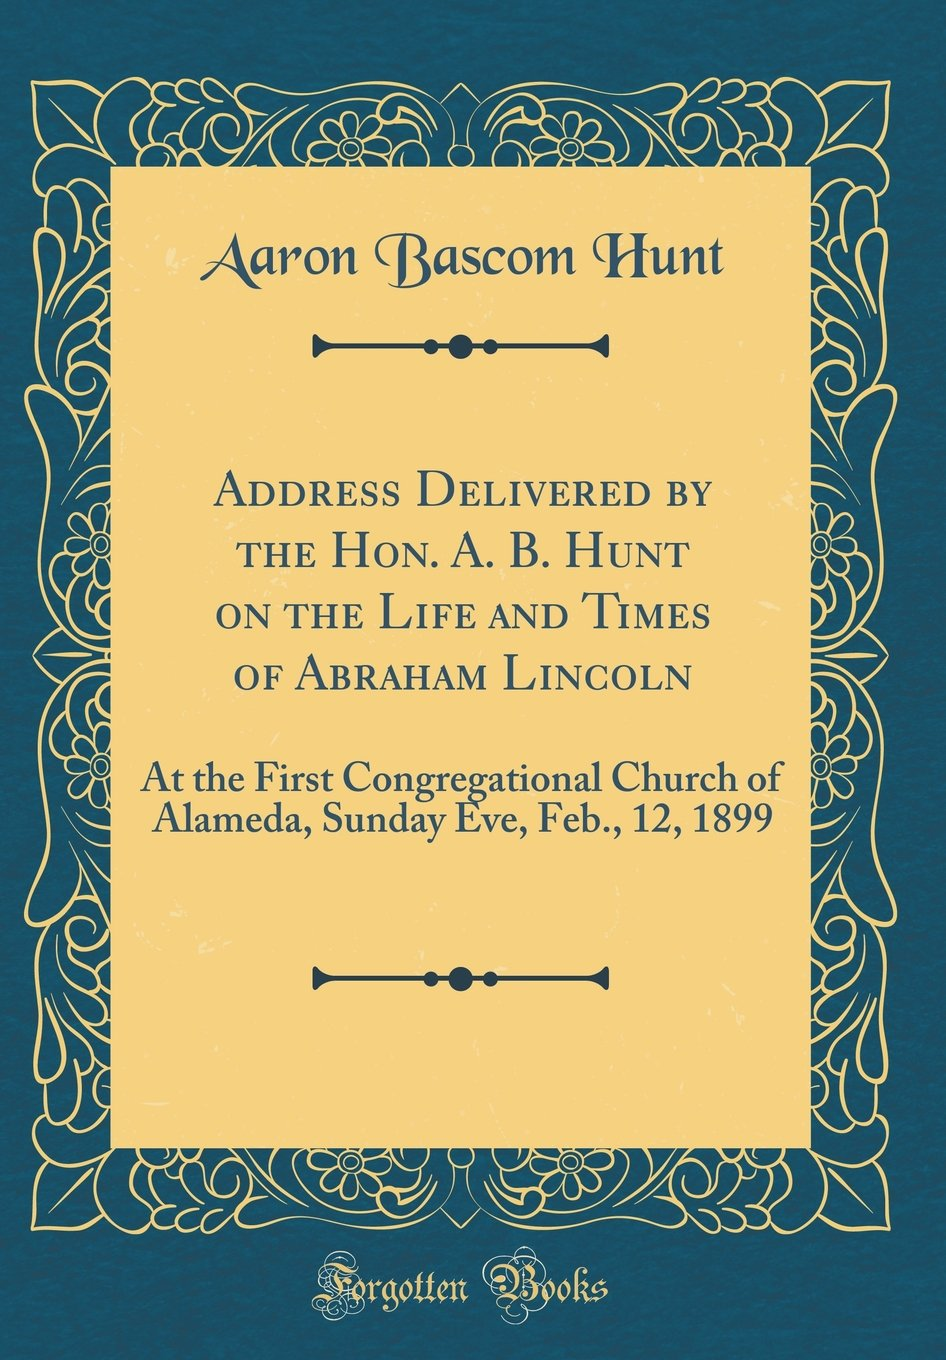 Address Delivered by the Hon. A. B. Hunt on the Life and Times of Abraham Lincoln: At the First Congregational Church of Alameda, Sunday Eve, Feb., 12, 1899 (Classic Reprint) pdf